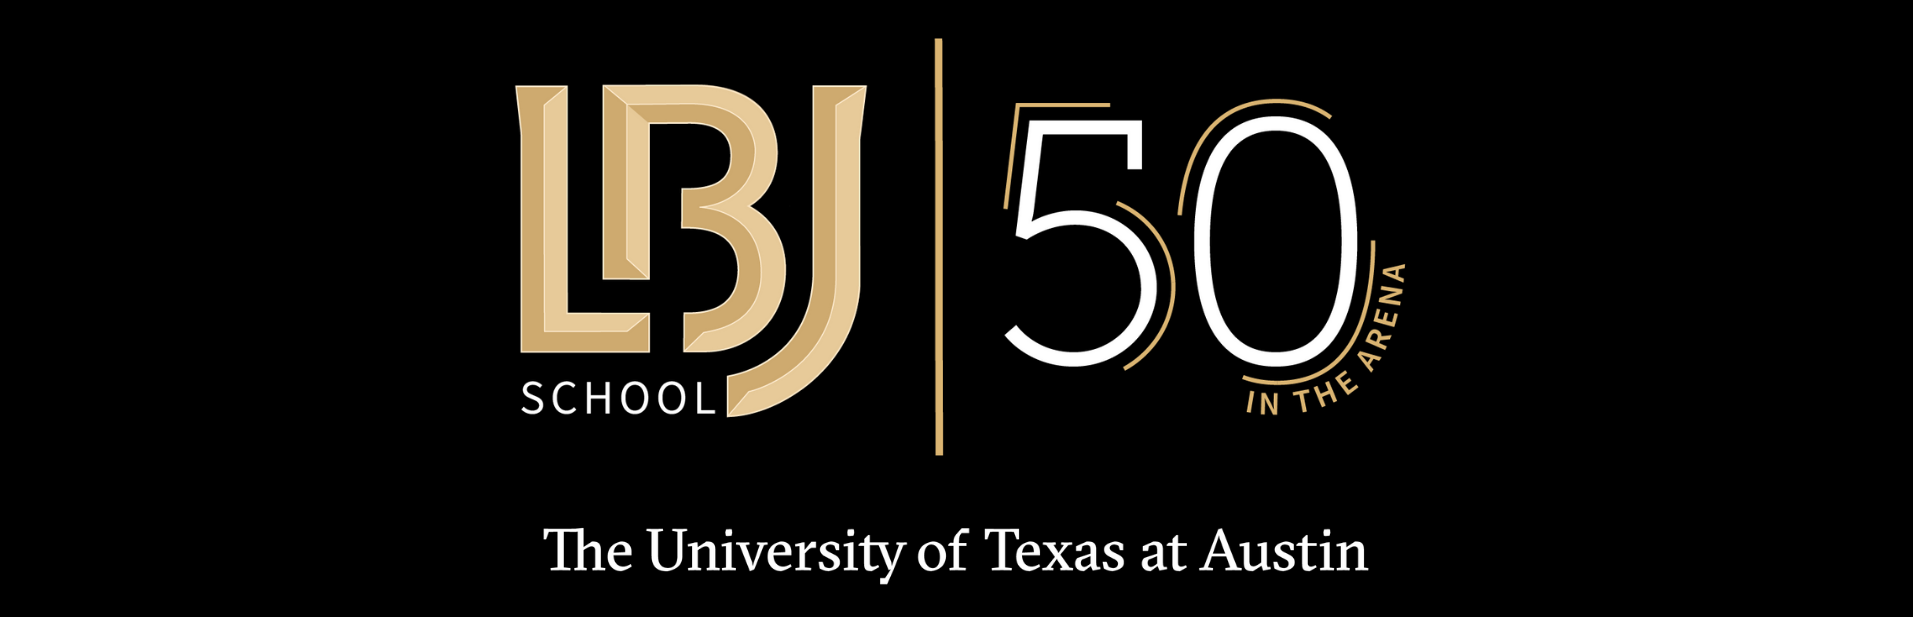 LBJ 50th anniversary logo with The University of Texas at Austin